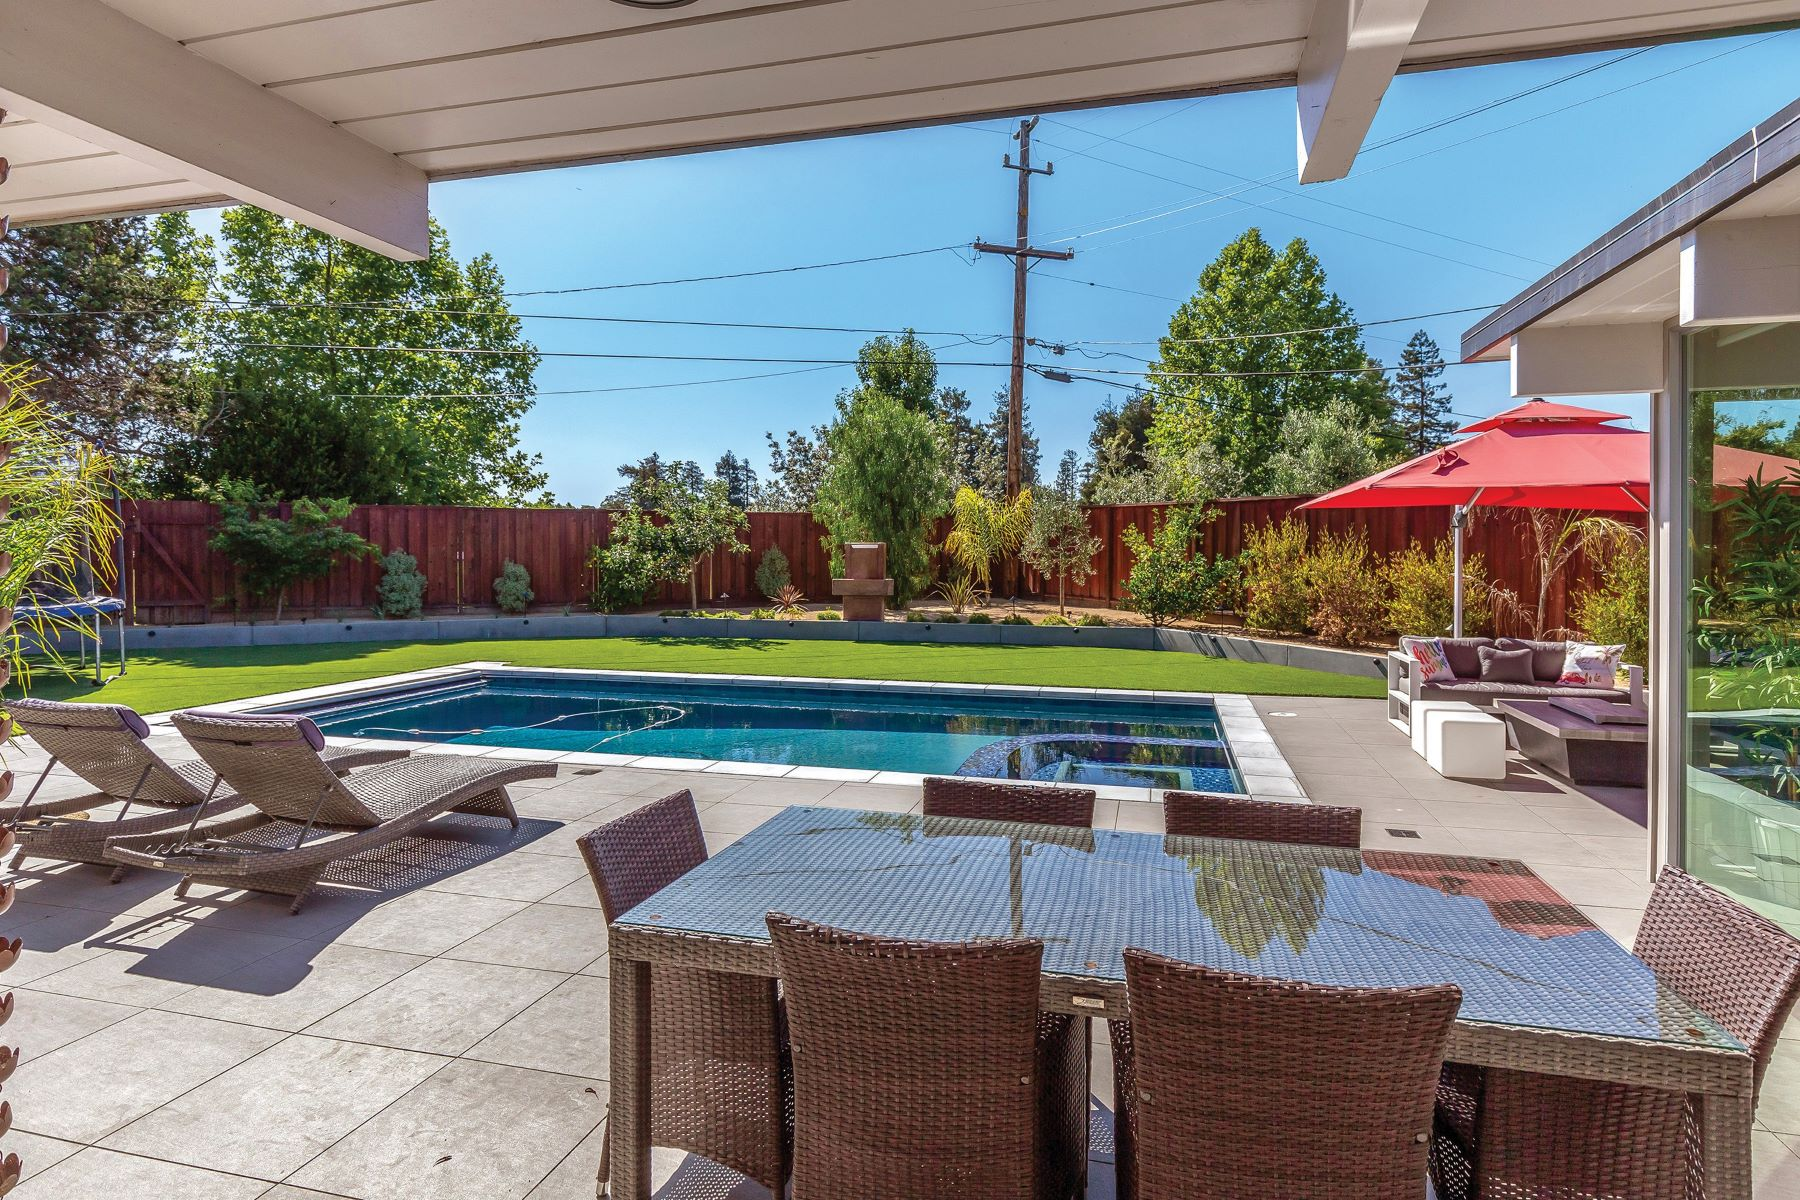 Single Family Homes for Sale at Stunning Sunnyvale Eichler! 975 Susquehanna Court Sunnyvale, California 94087 United States